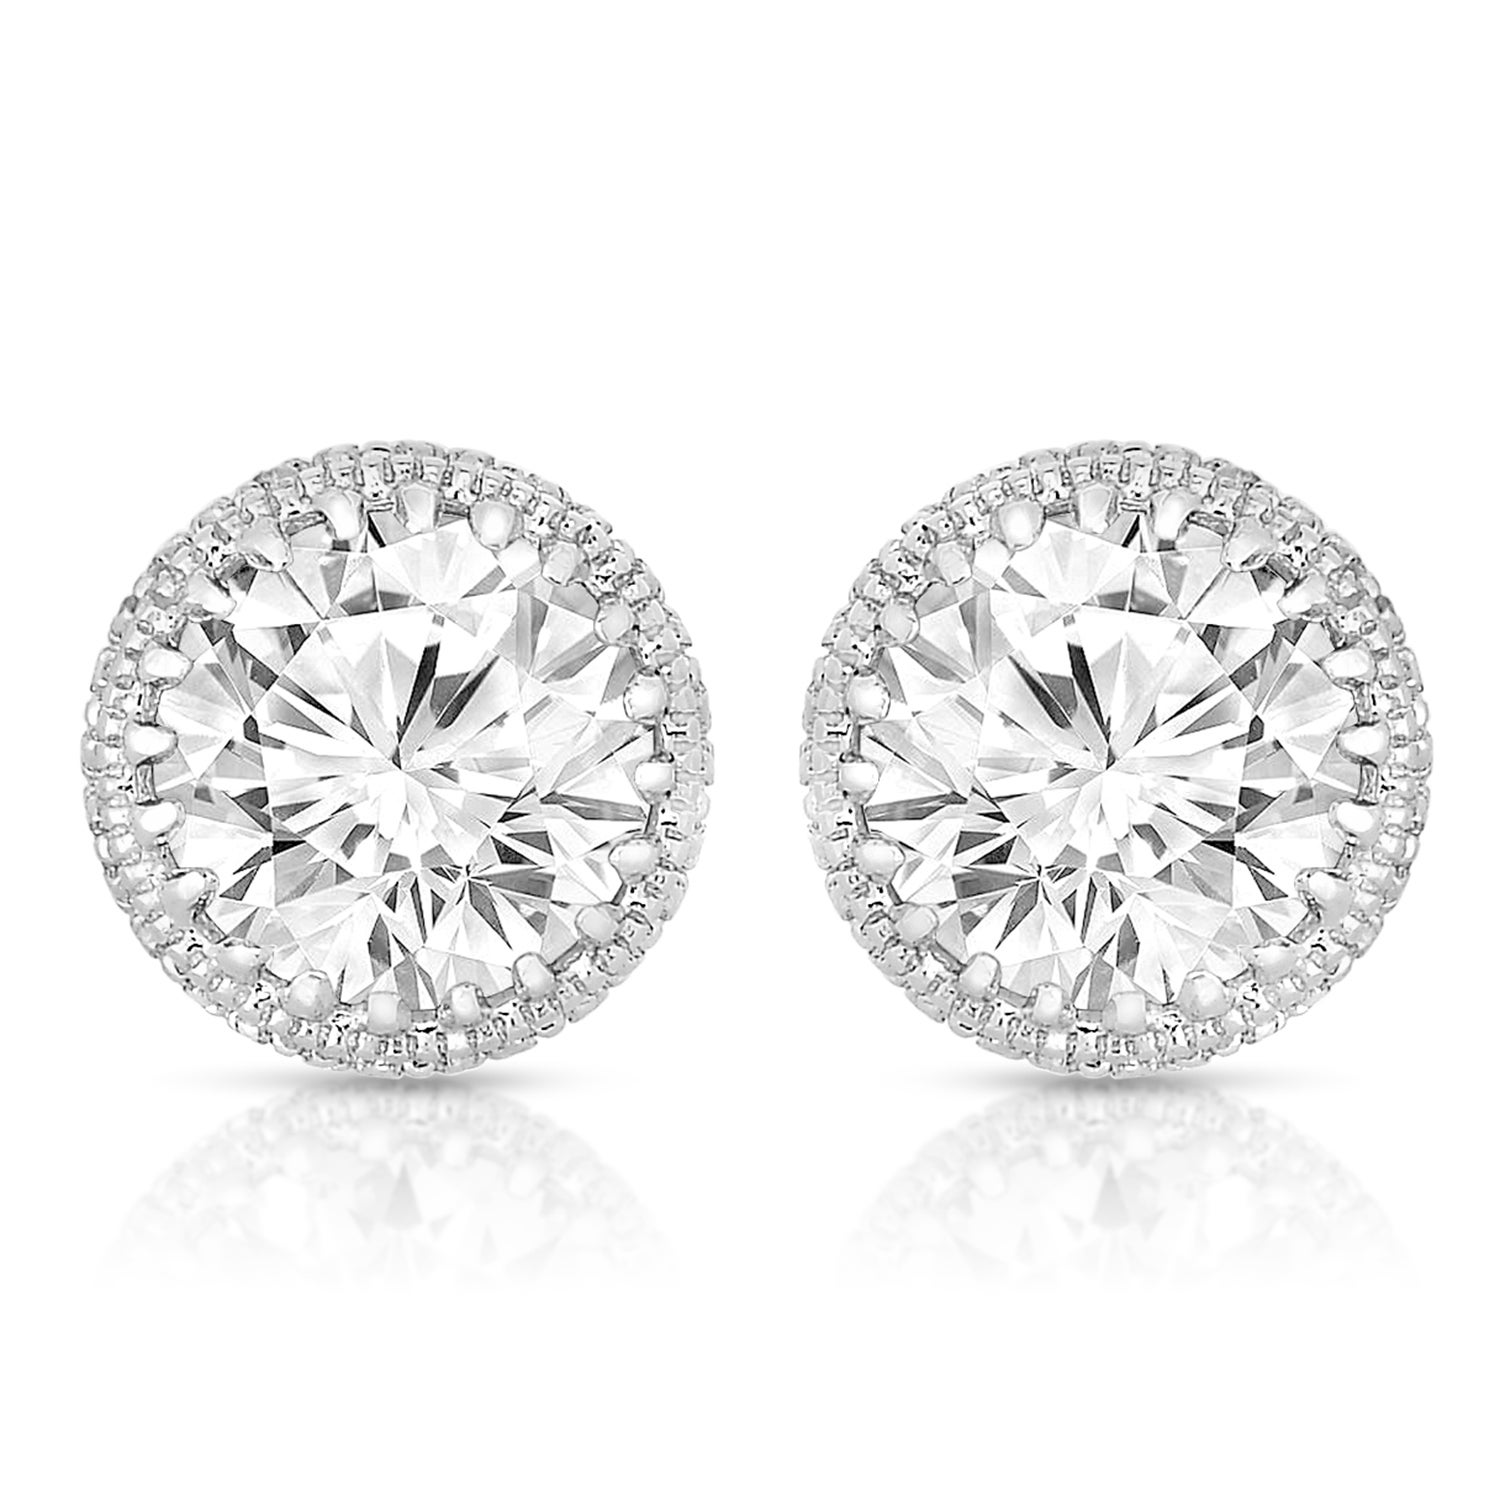 Collette Z Sterling Silver With Rhodium Plated Clear Round Cubic Zirconia Stud Earrings On Free Shipping Orders Over 45